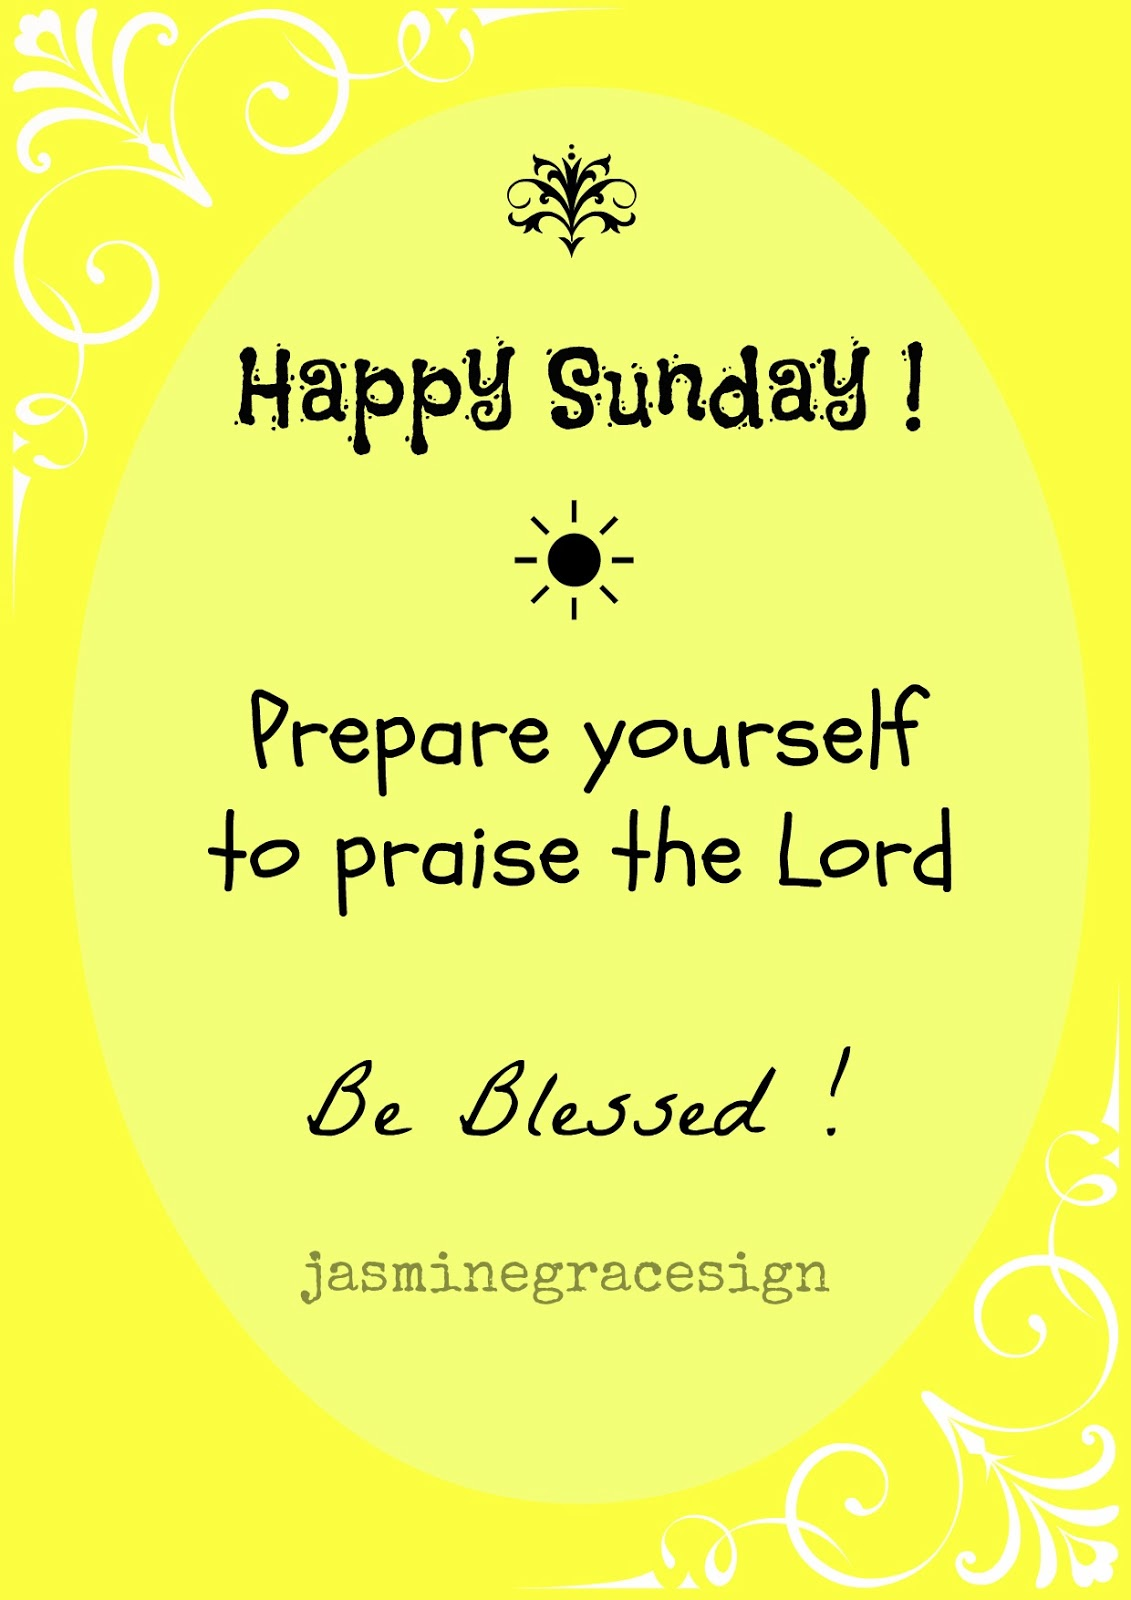 Made Well by Us: Happy Sunday